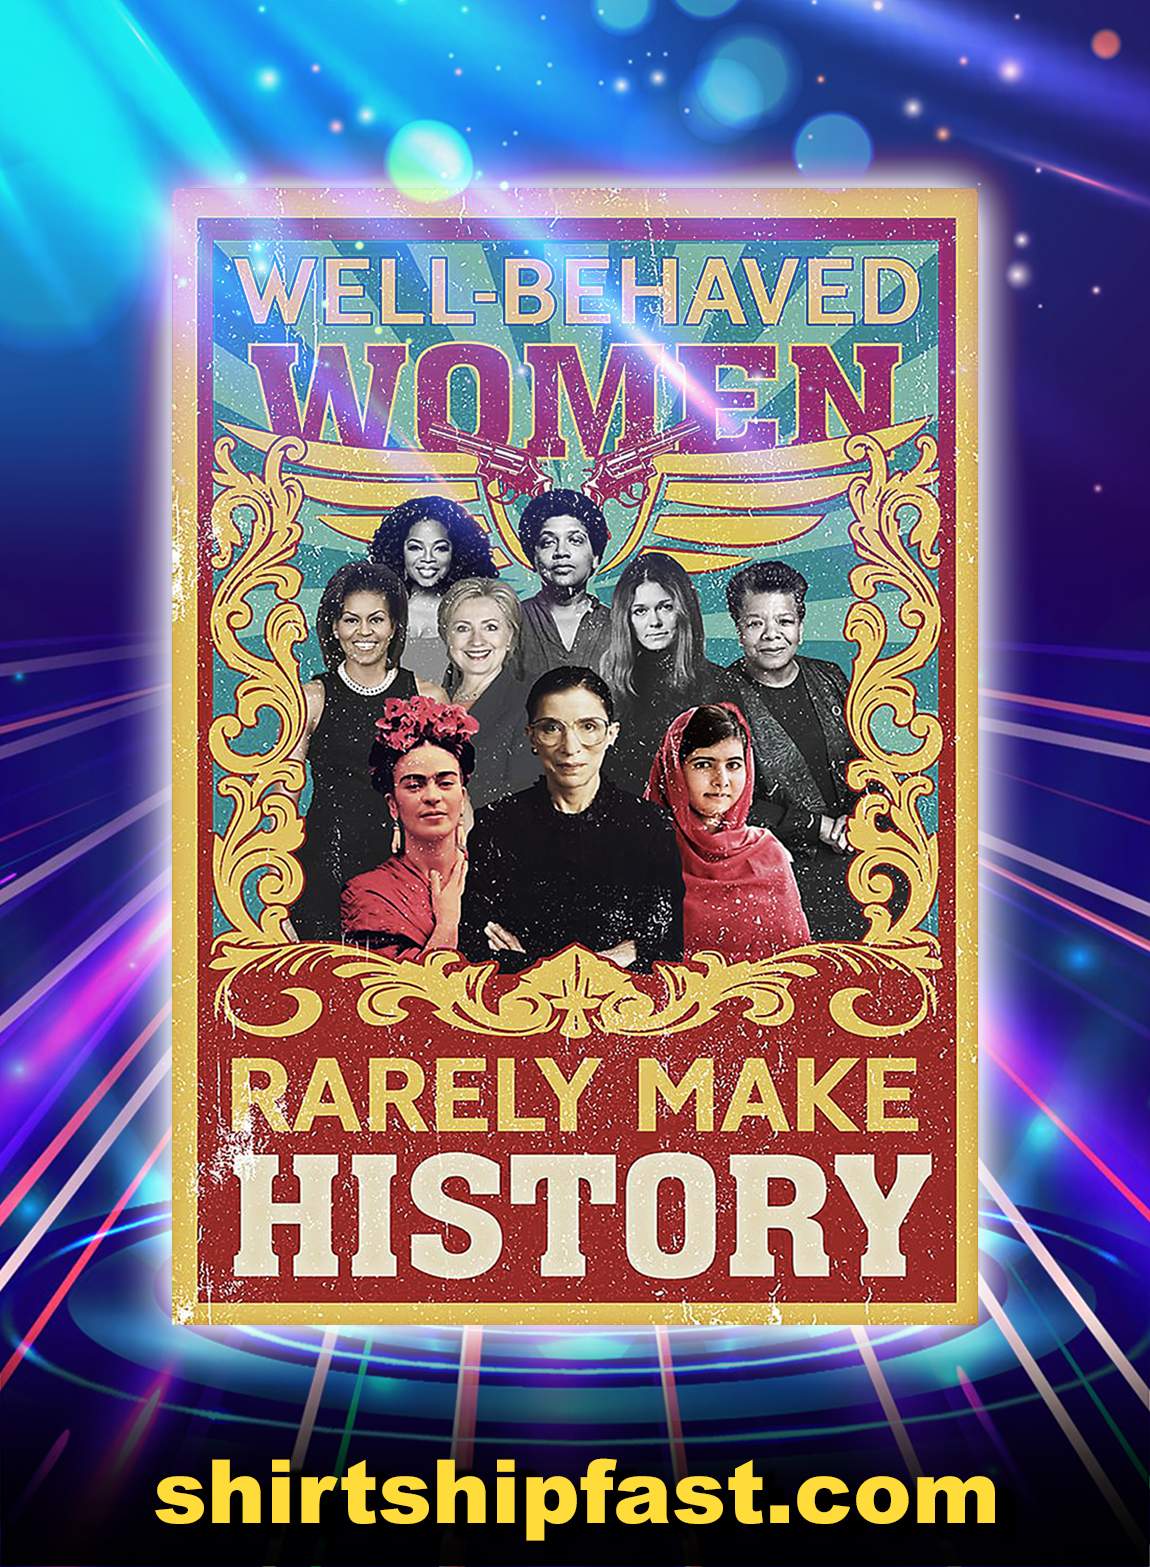 Well-behaved women rarely make history poster - A2